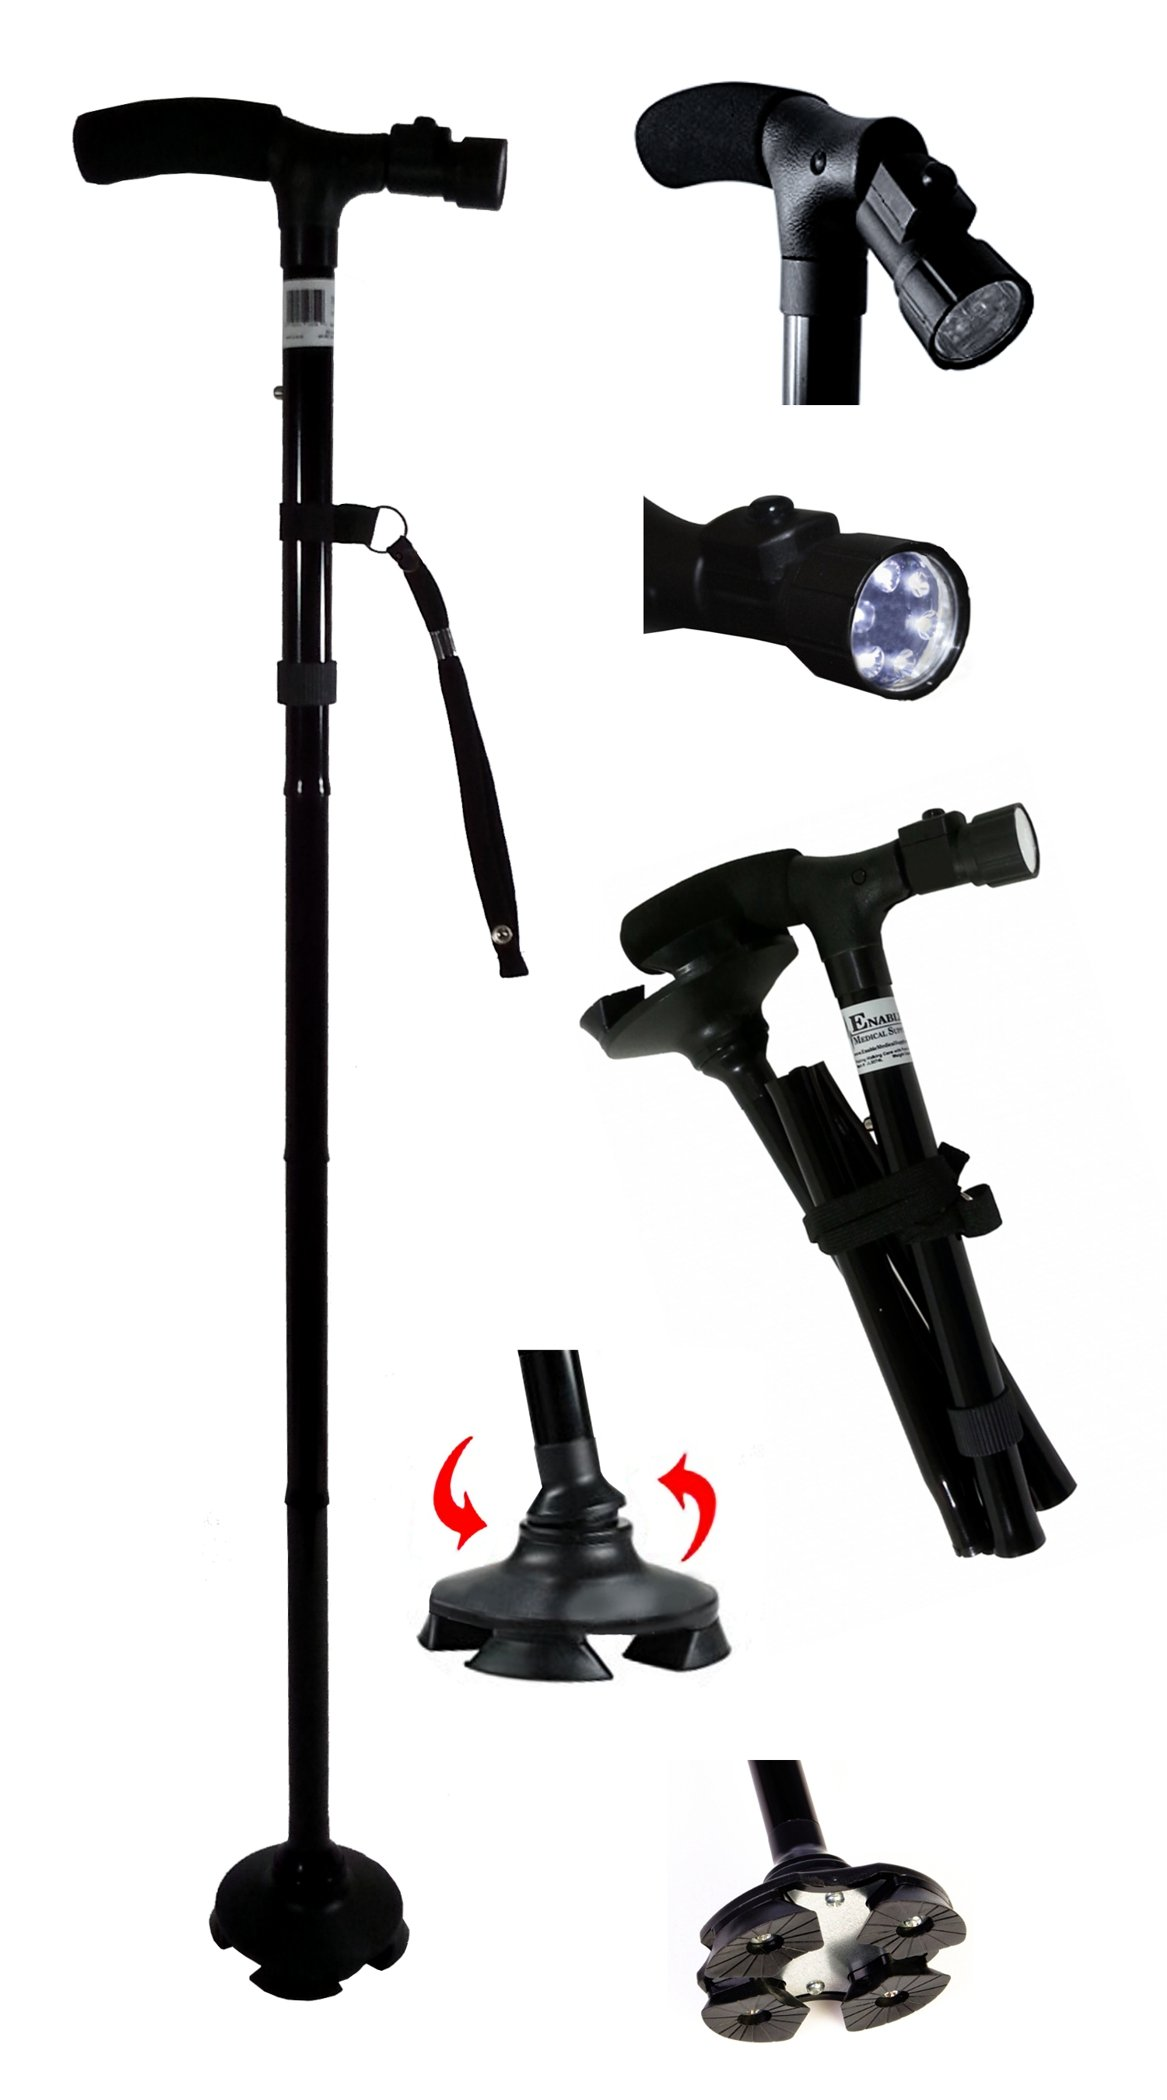 Sturdy Lightweight Folding Cane/Walking Stick features a Pivoting Self-standing Quad Base, Adjustable LED Light & Cushion Handle